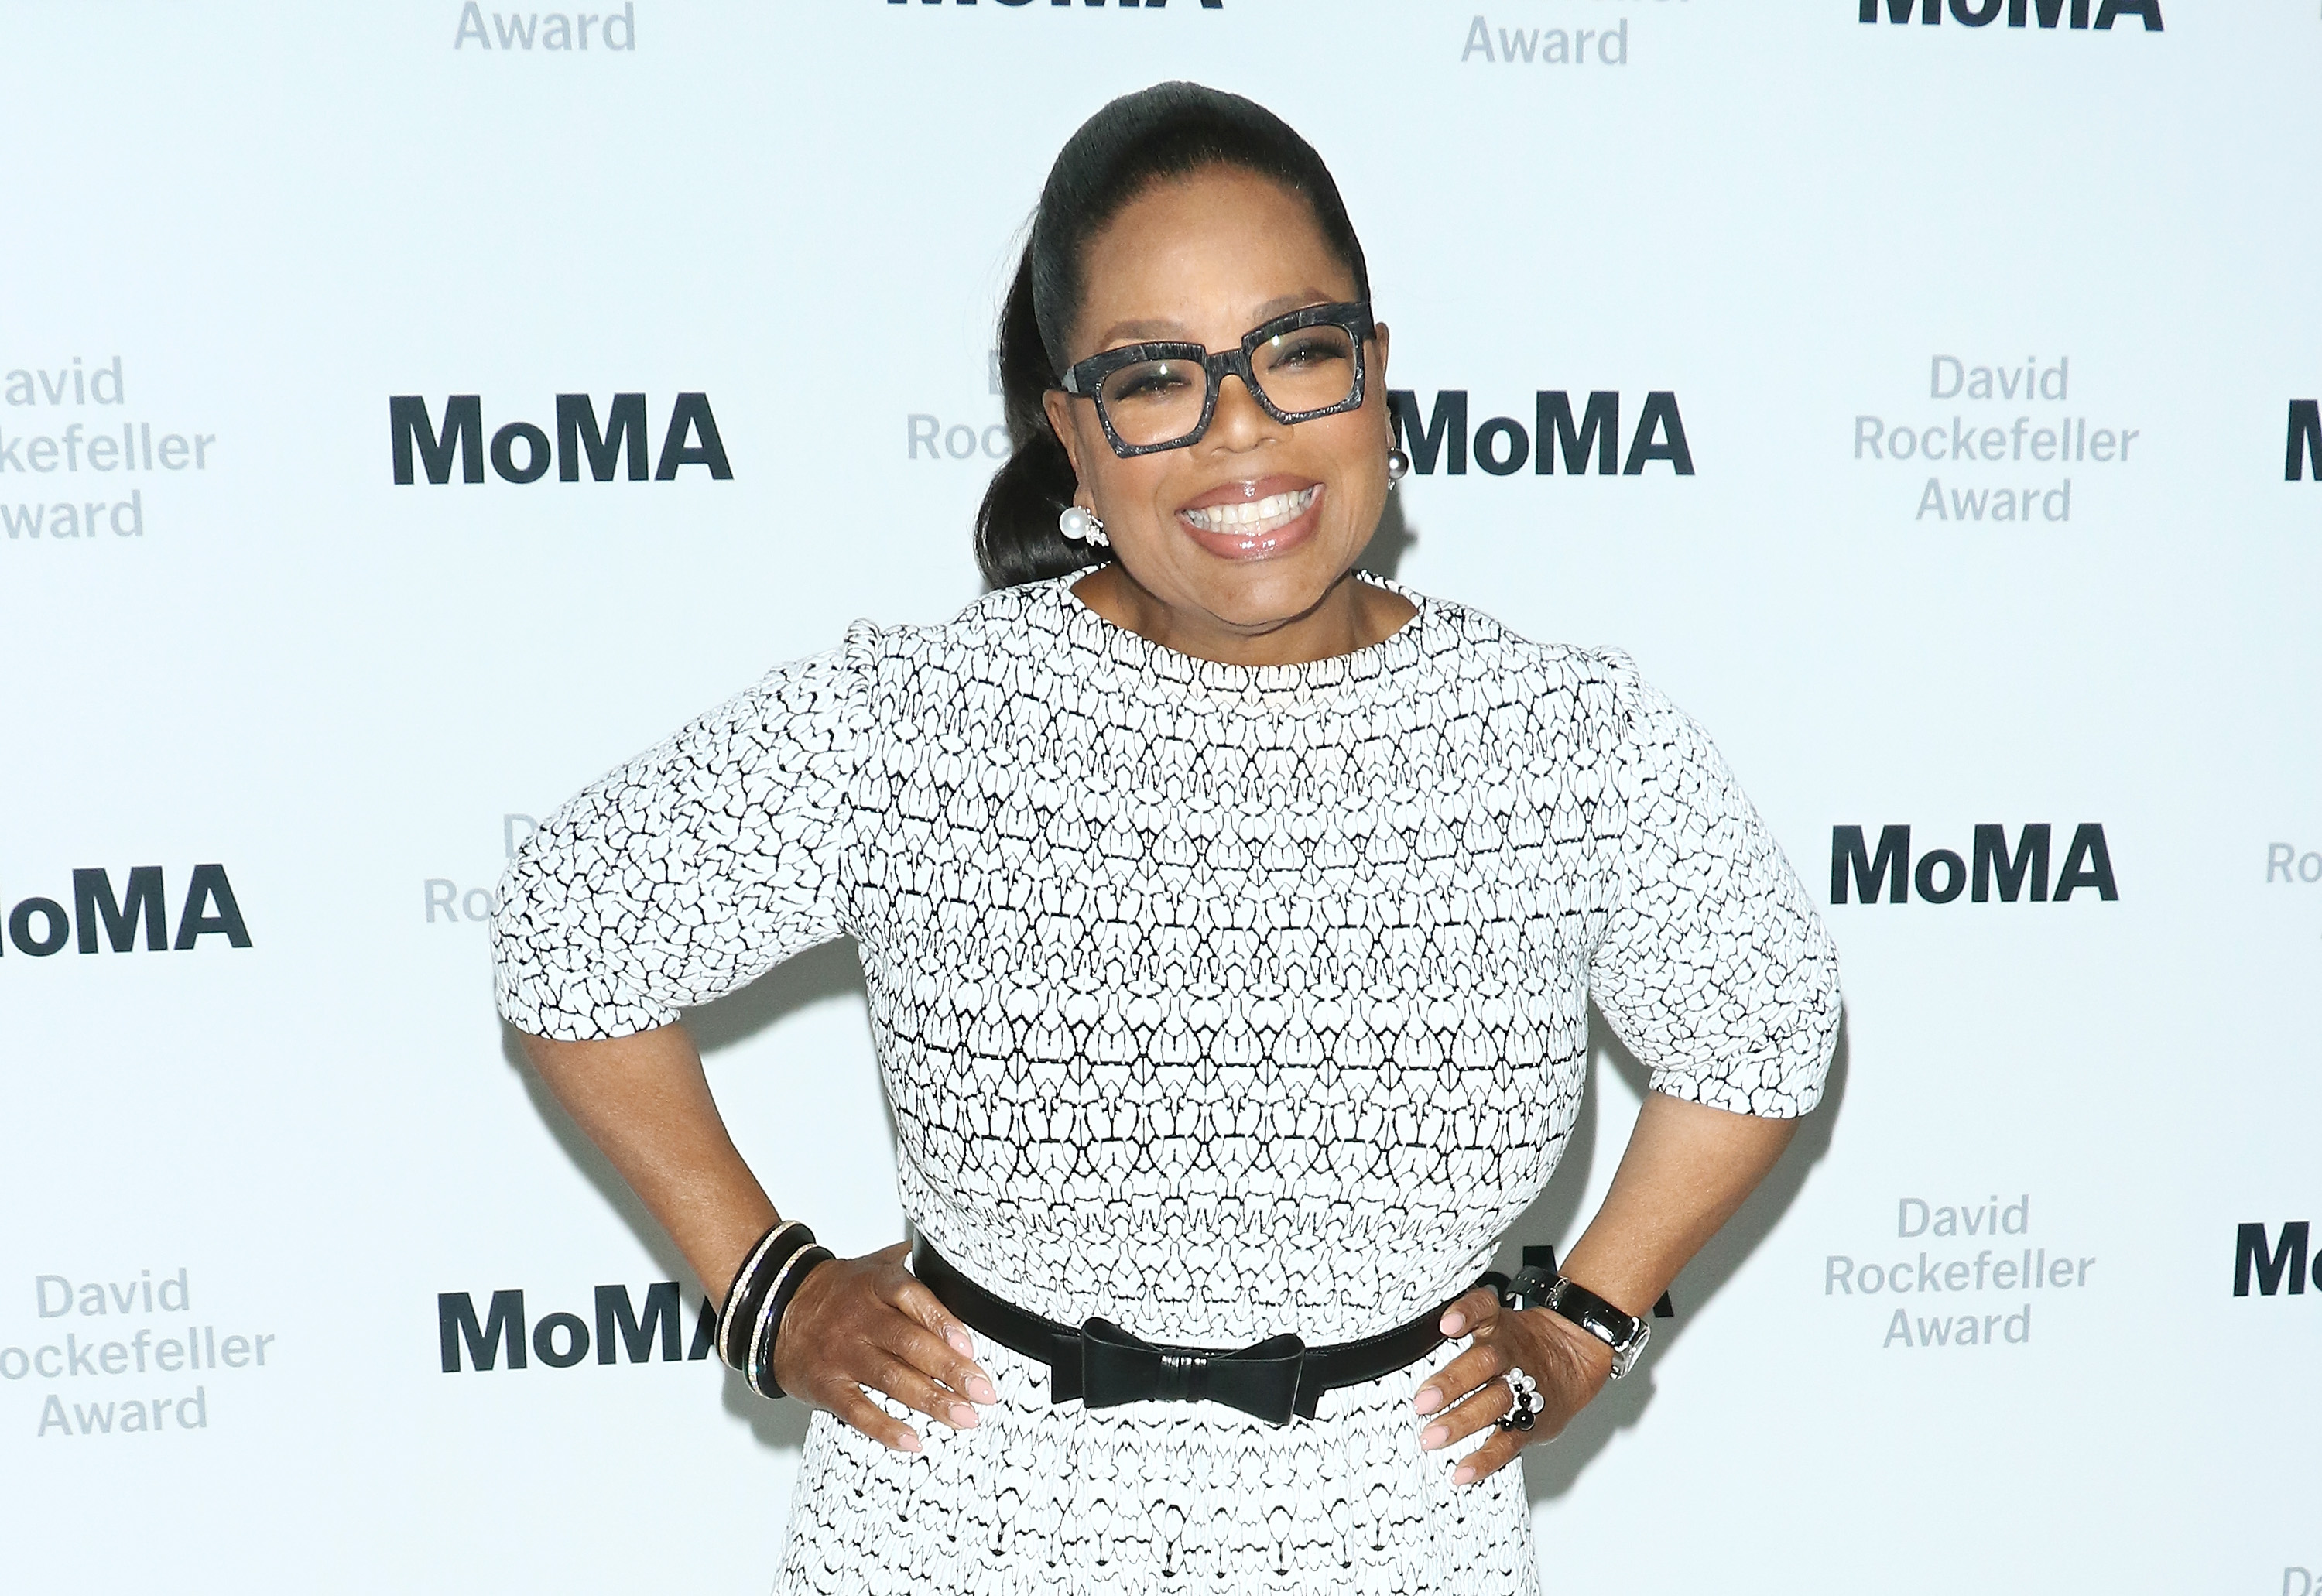 2018 MoMA David Rockefeller Award Luncheon Honoring Oprah